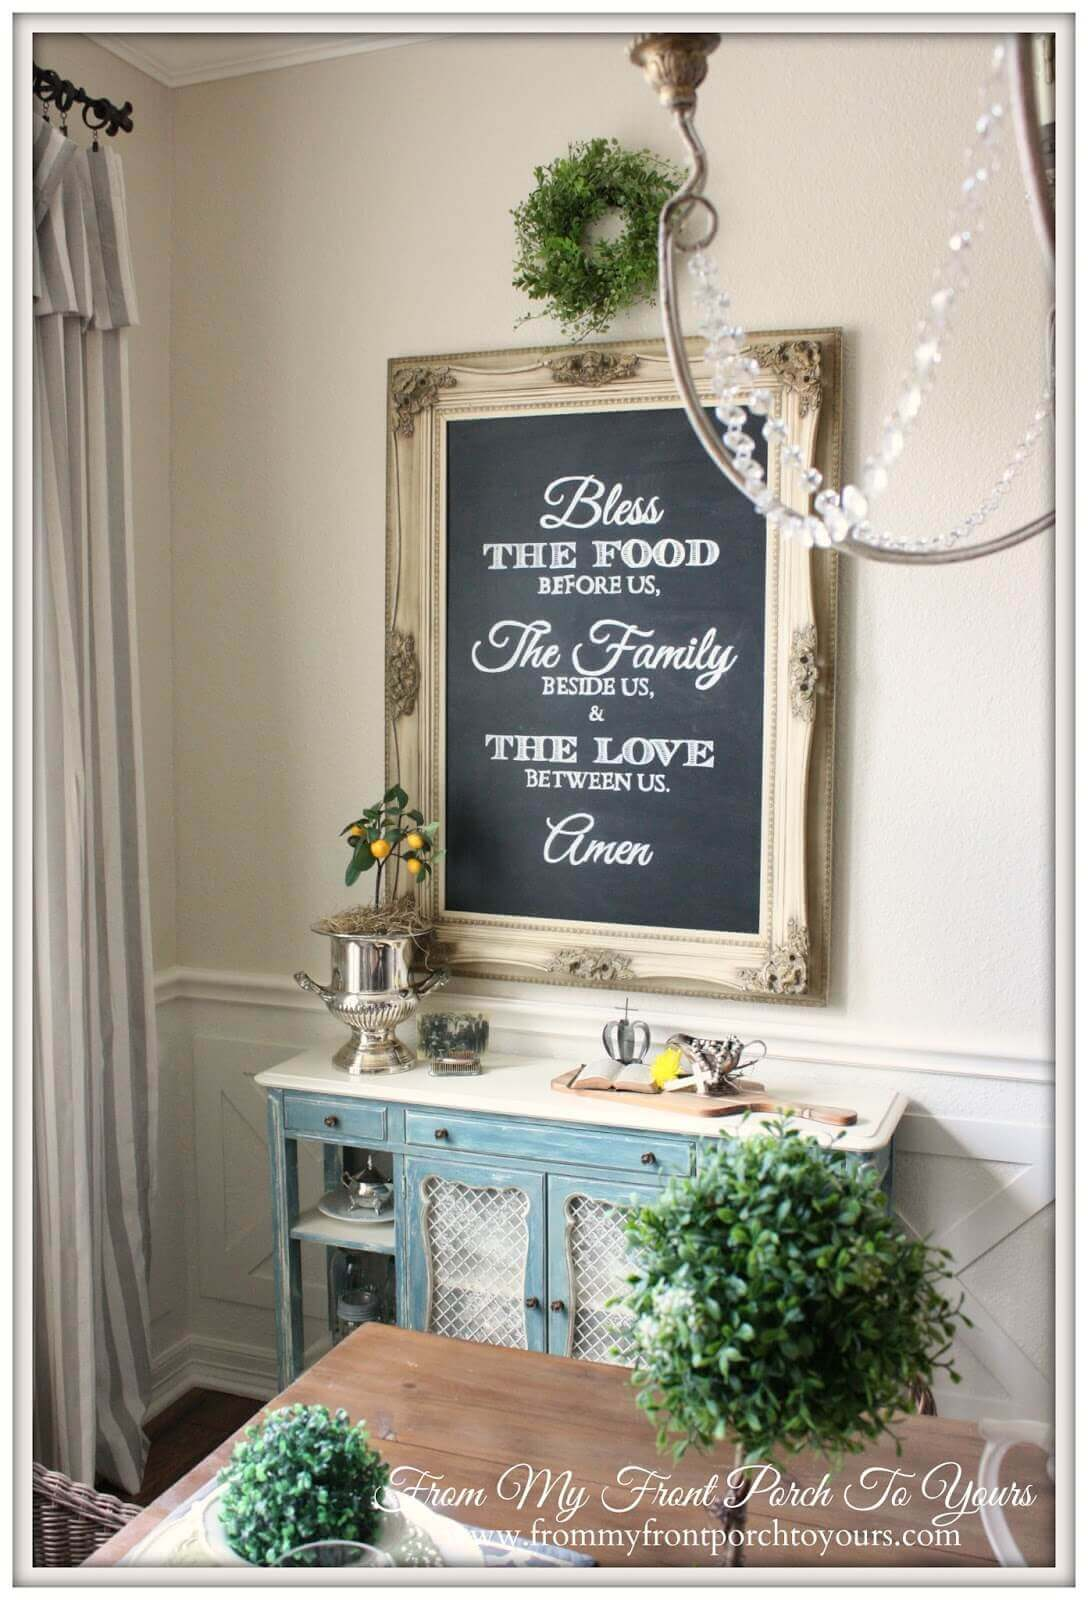 The Best Country Dining Room Wall Decor Farmhouse Using Natural Elements  And A Mix Of Textures